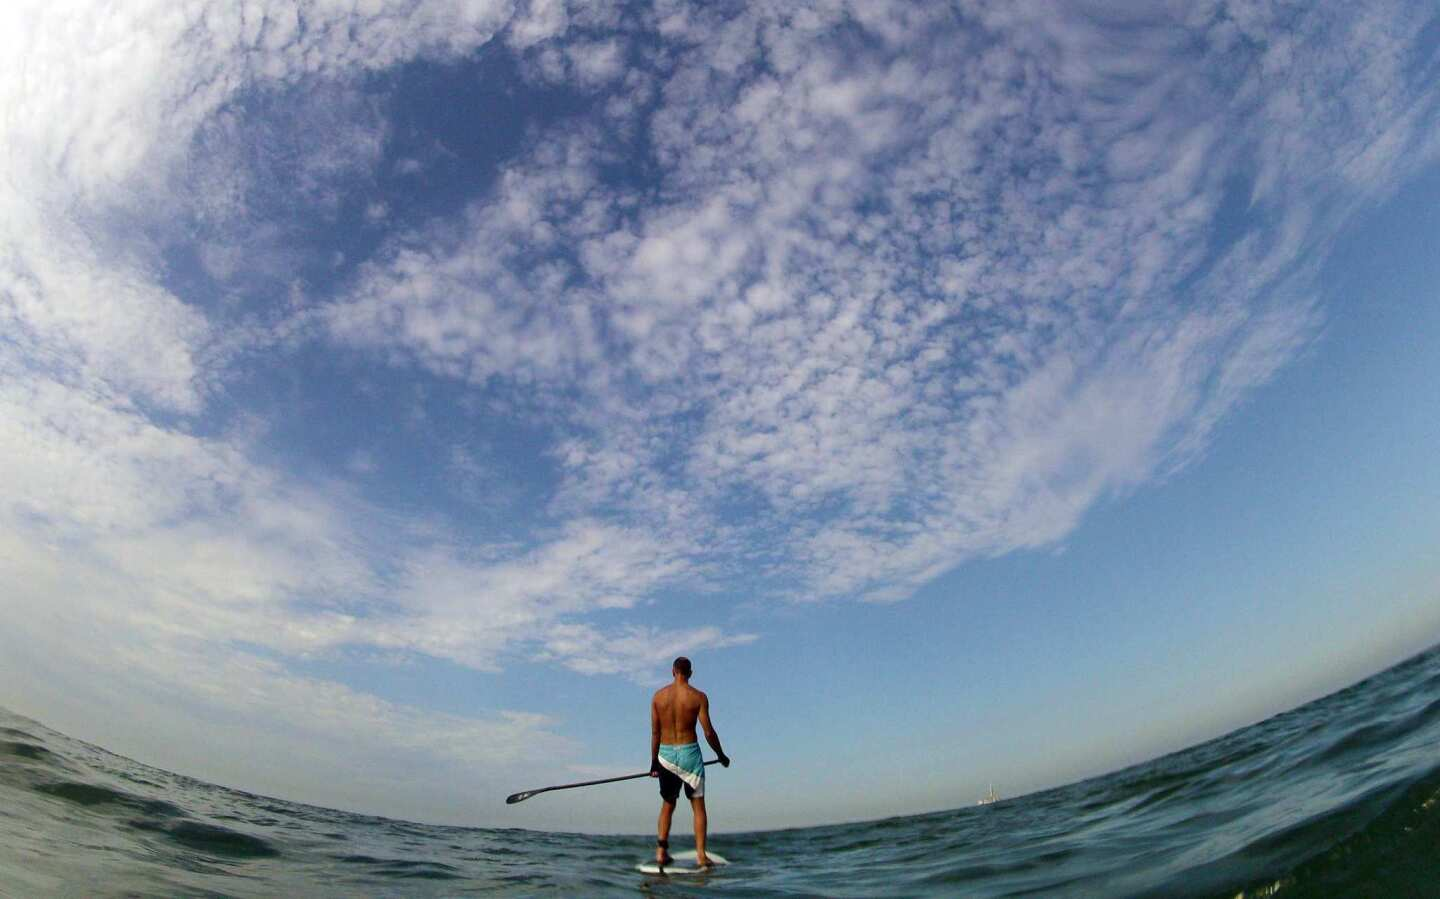 Stand-up paddle surfer Kyle Wagstaff of Park City, Utah, waits for a wave amid warm temperatures and partly cloudy skies in Huntington Beach.